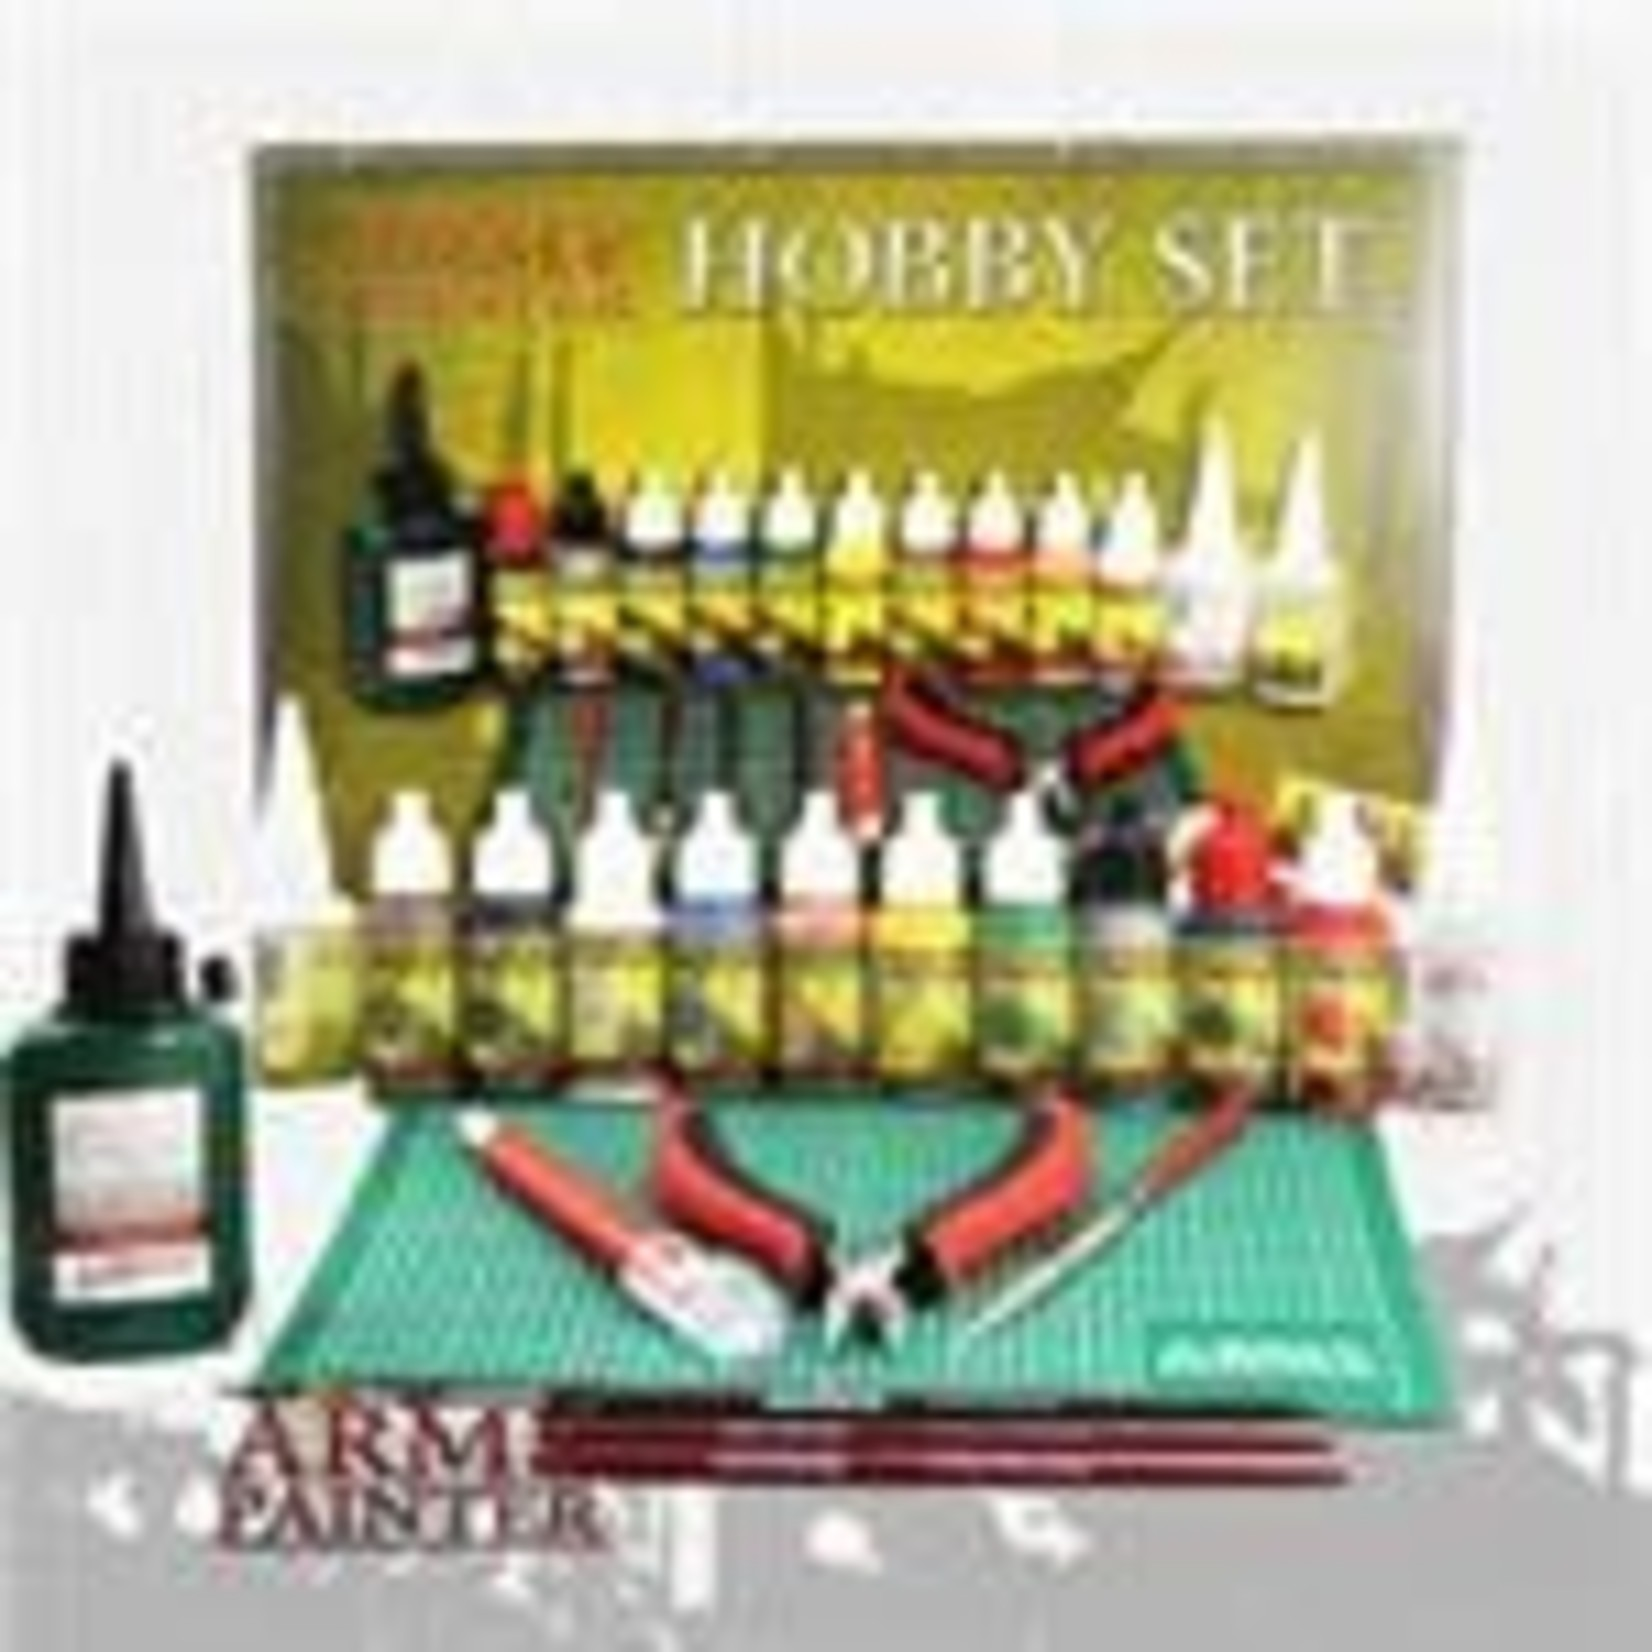 The Army Painter The Army Painter Hobby Set